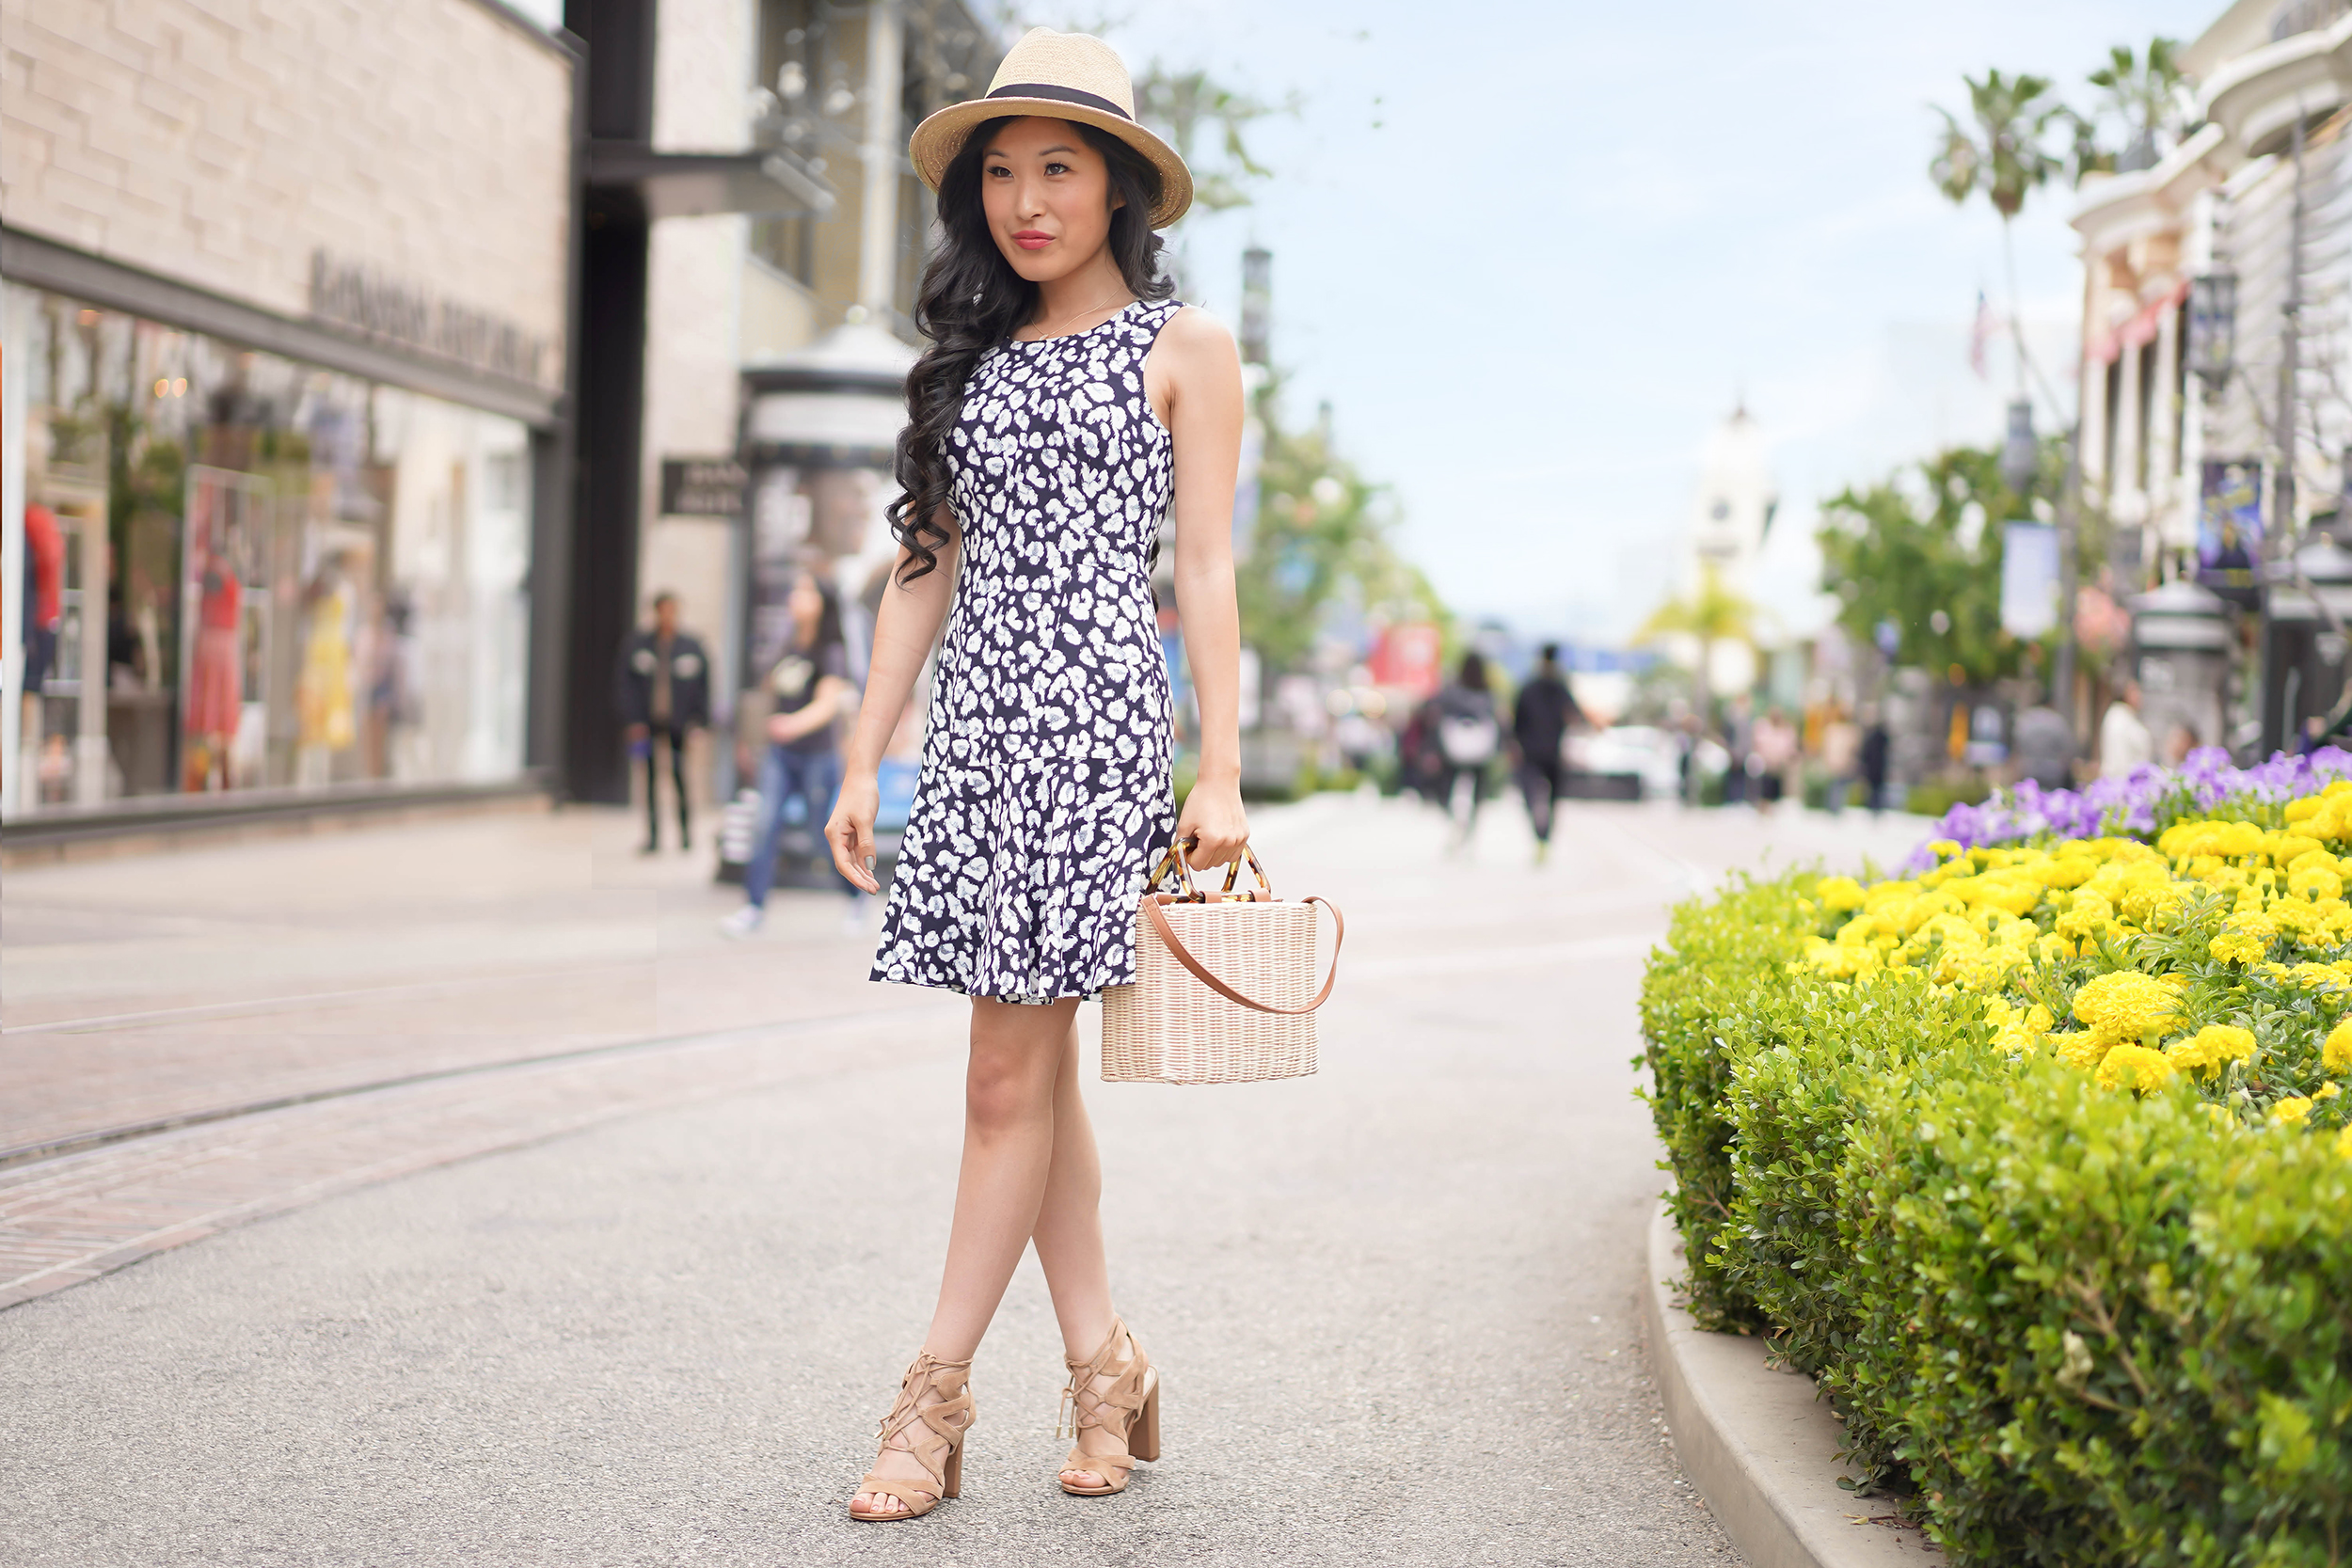 Banana Republic Petite Leopard Flounce-Hem Dress in Navy, Adjustable Straw Hat